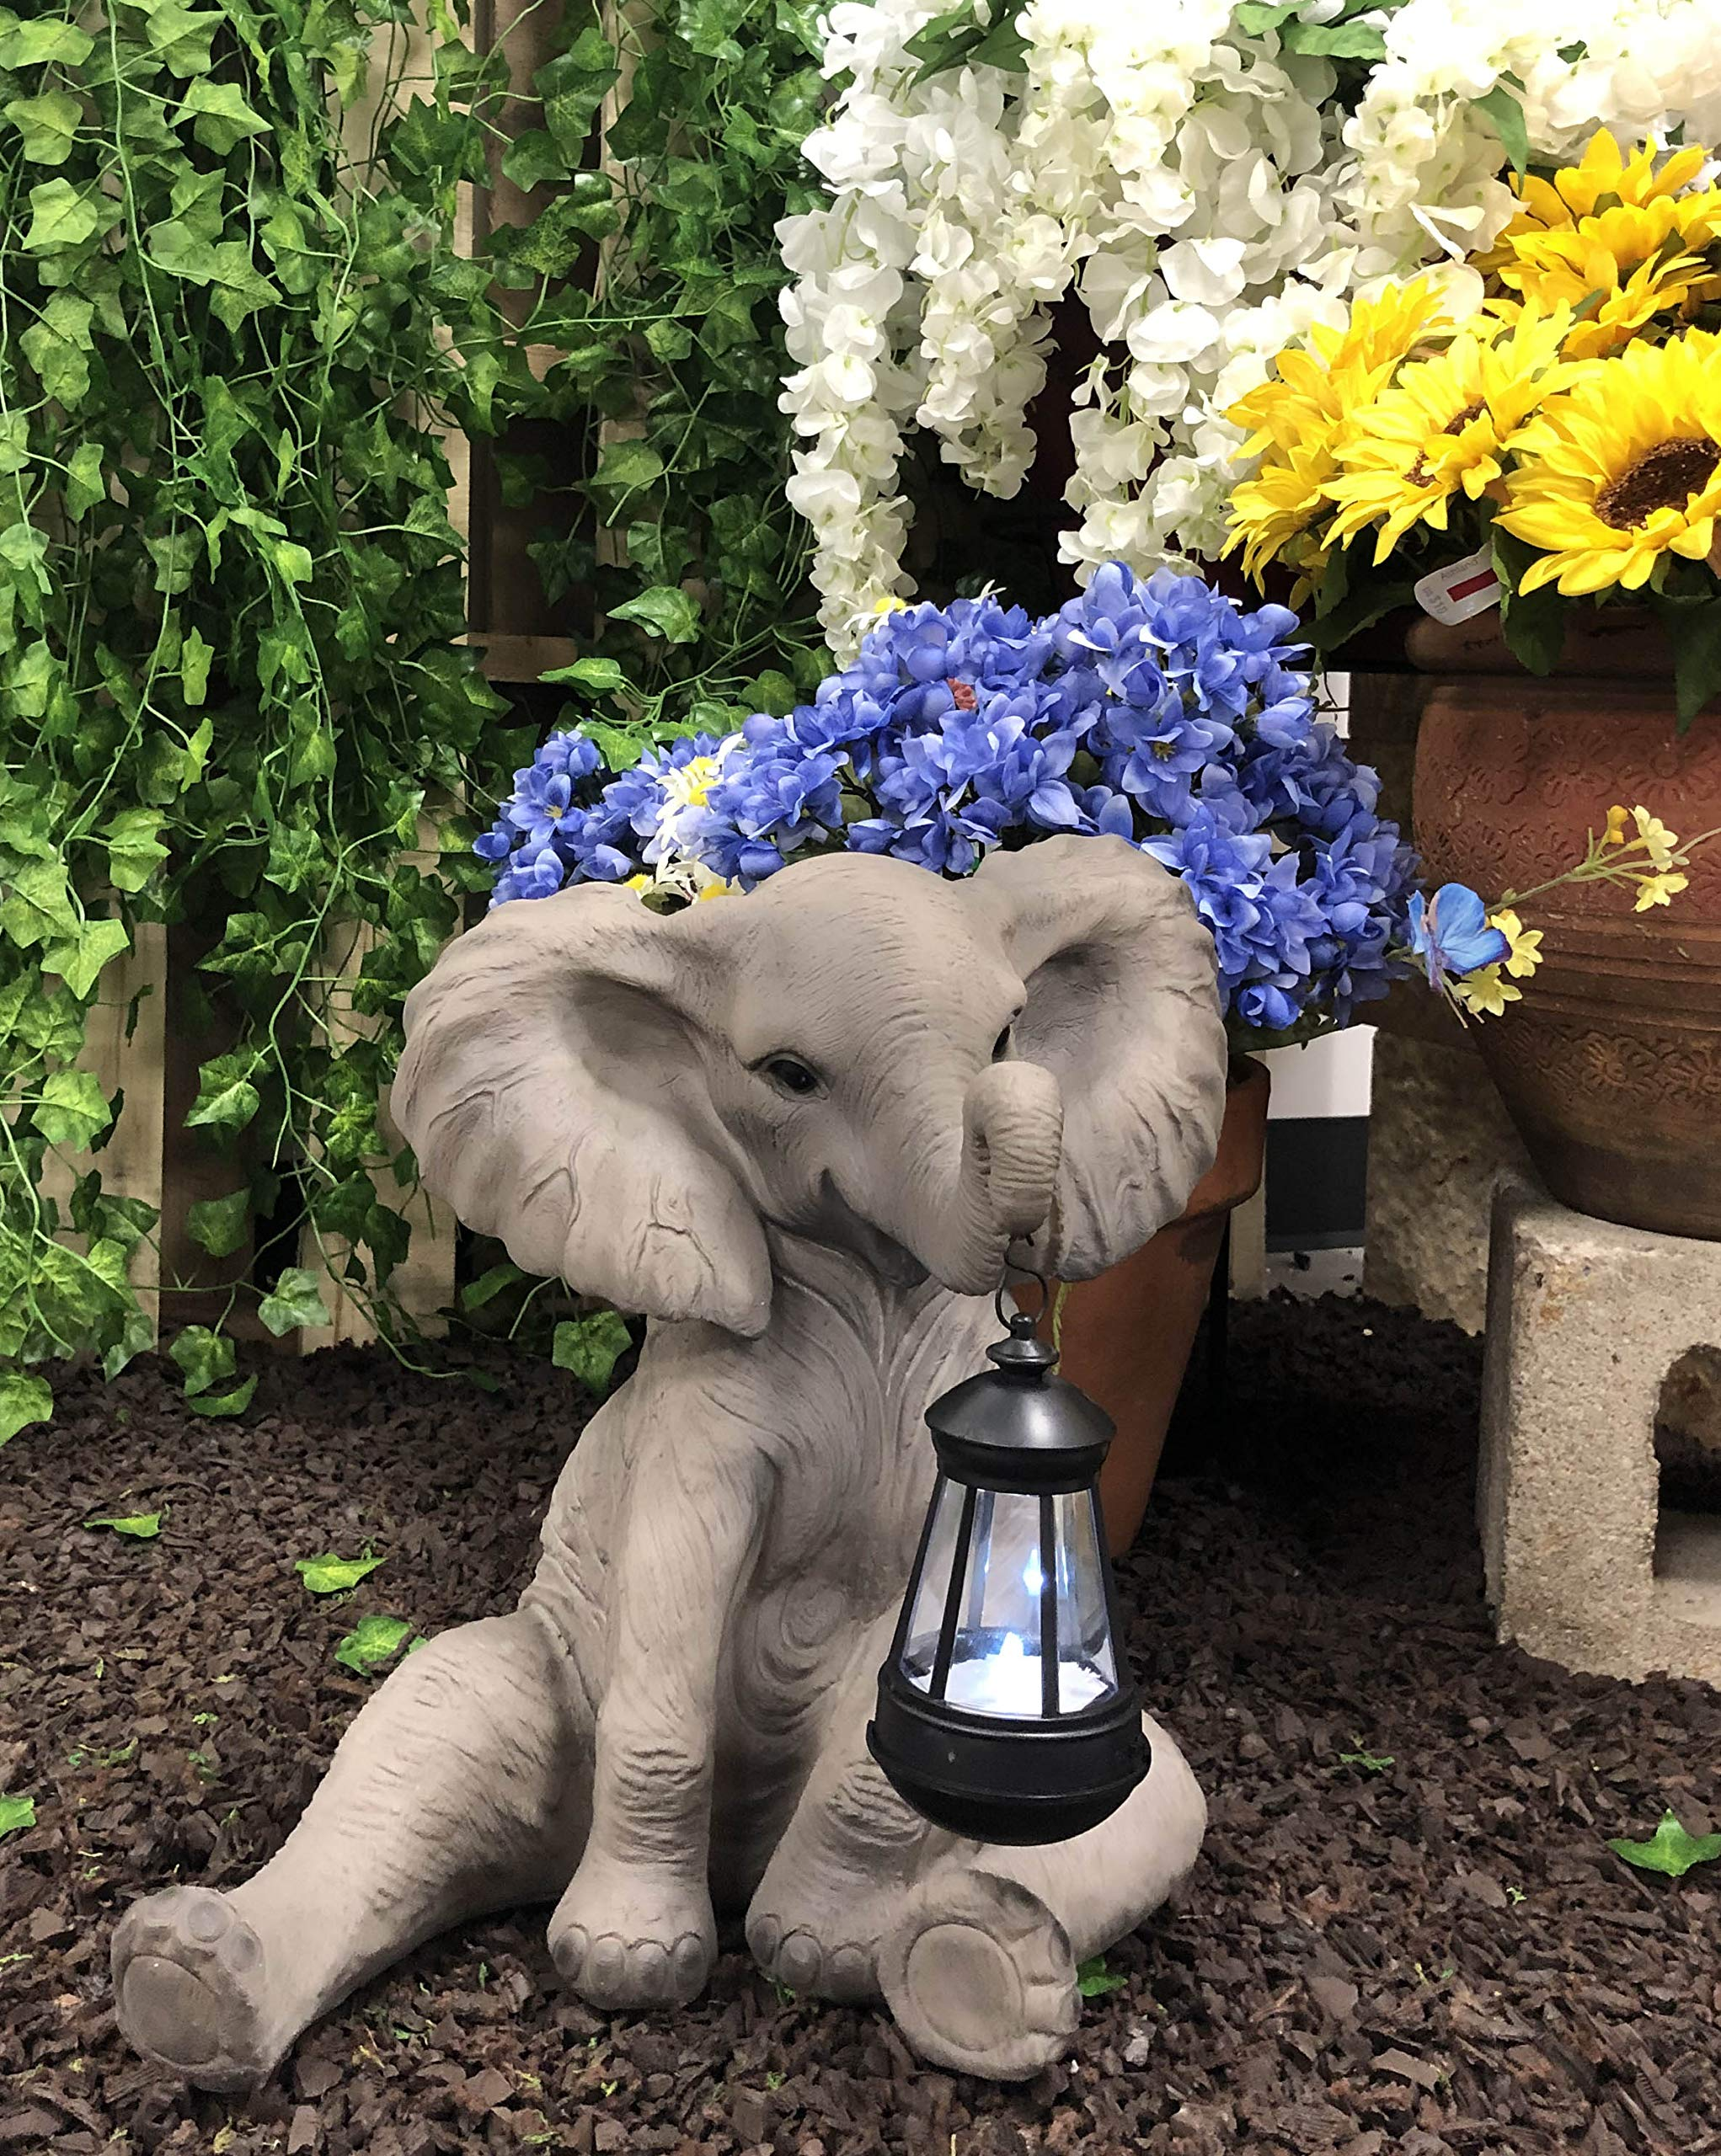 Ebros Safari Savanna Wildlife Animal Melee Adorable Pachy Elephant Statue Home Patio Decor Figurine with Solar LED Light Lantern Lamp 13.75'' H Guest Greeter Elephants Path Lighter Sculpture